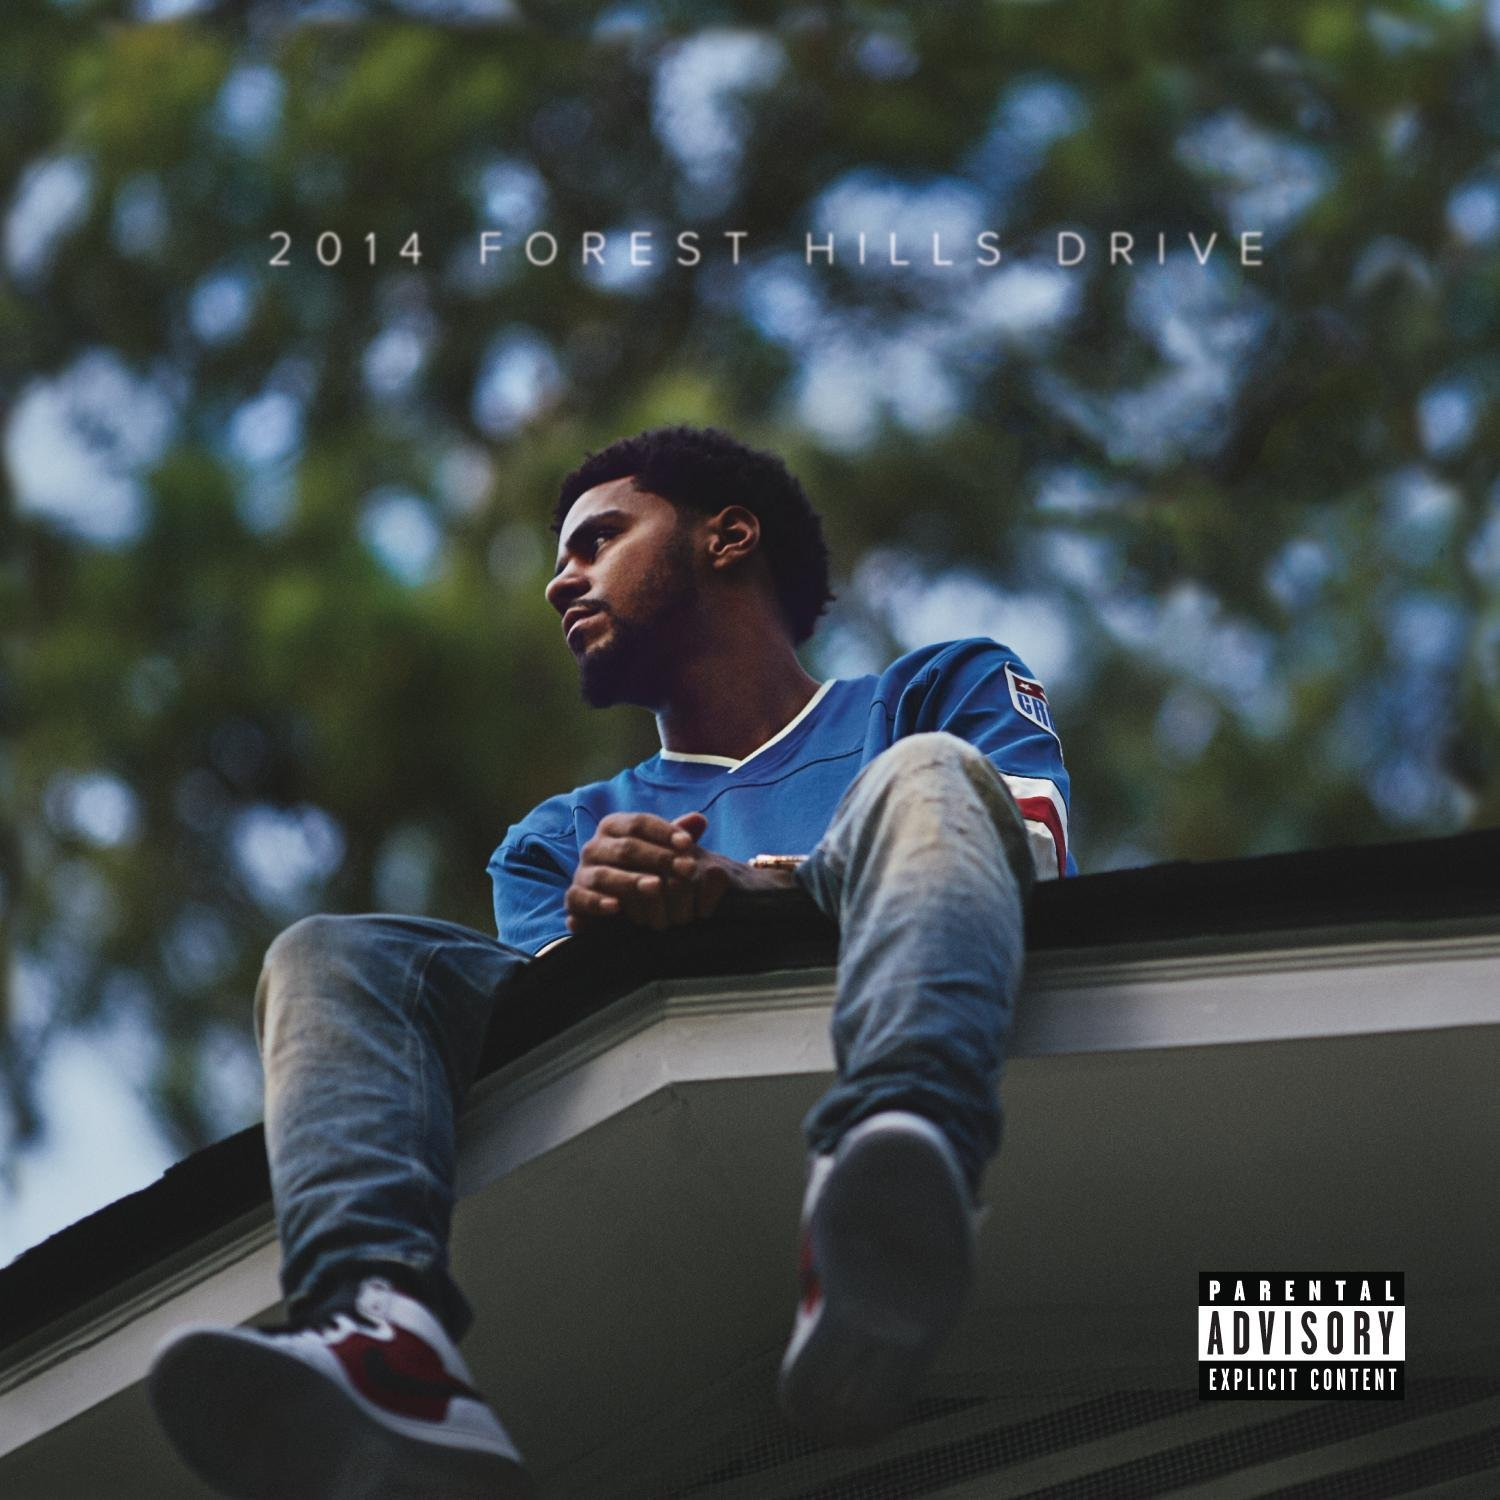 J Cole 2014 Pictures 2014 Forest Hills Driv...